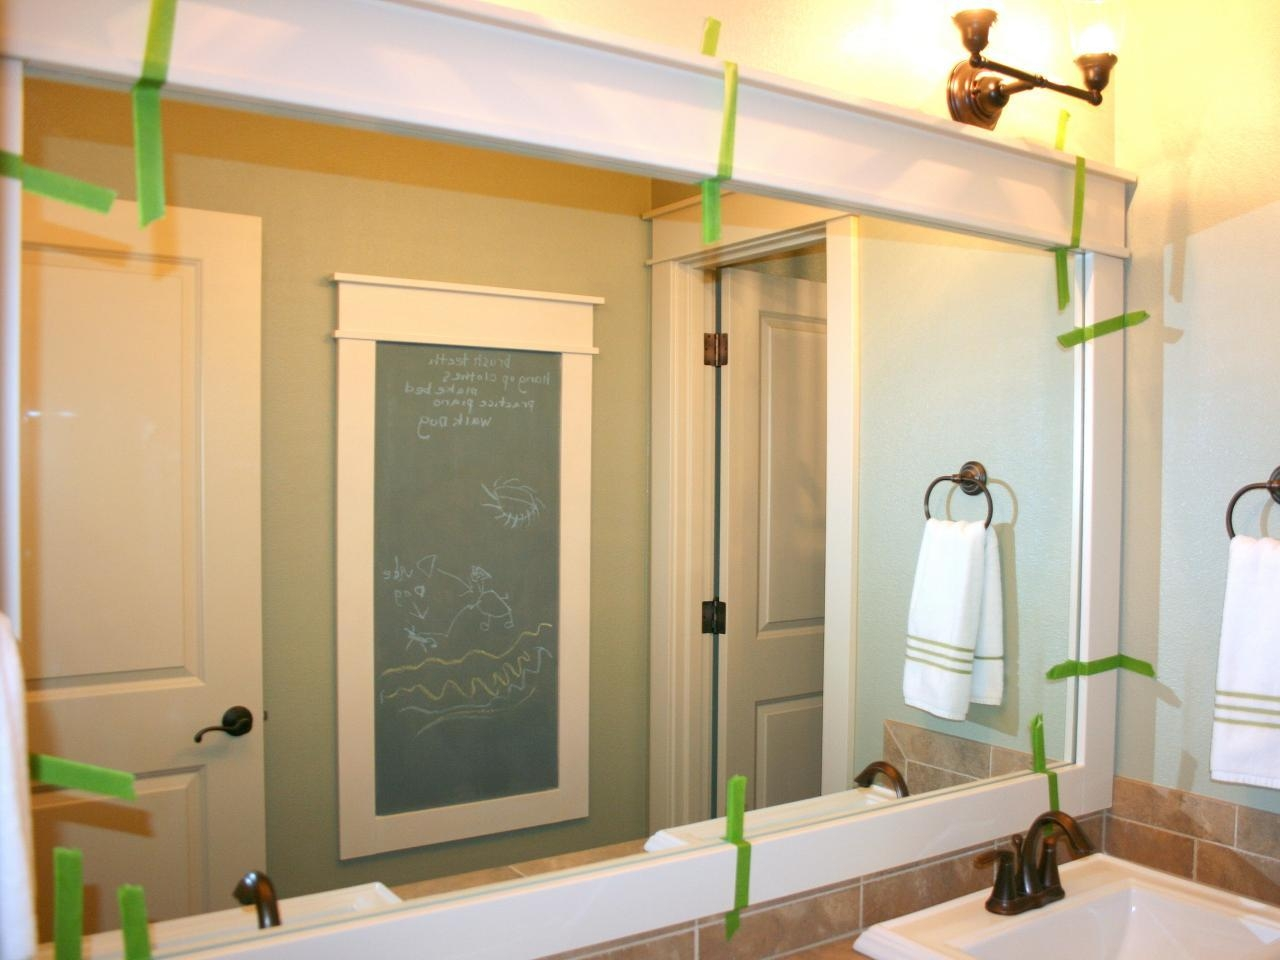 How To Frame A Mirror | Hgtv With Wall Mirrors For Bathrooms (View 15 of 20)